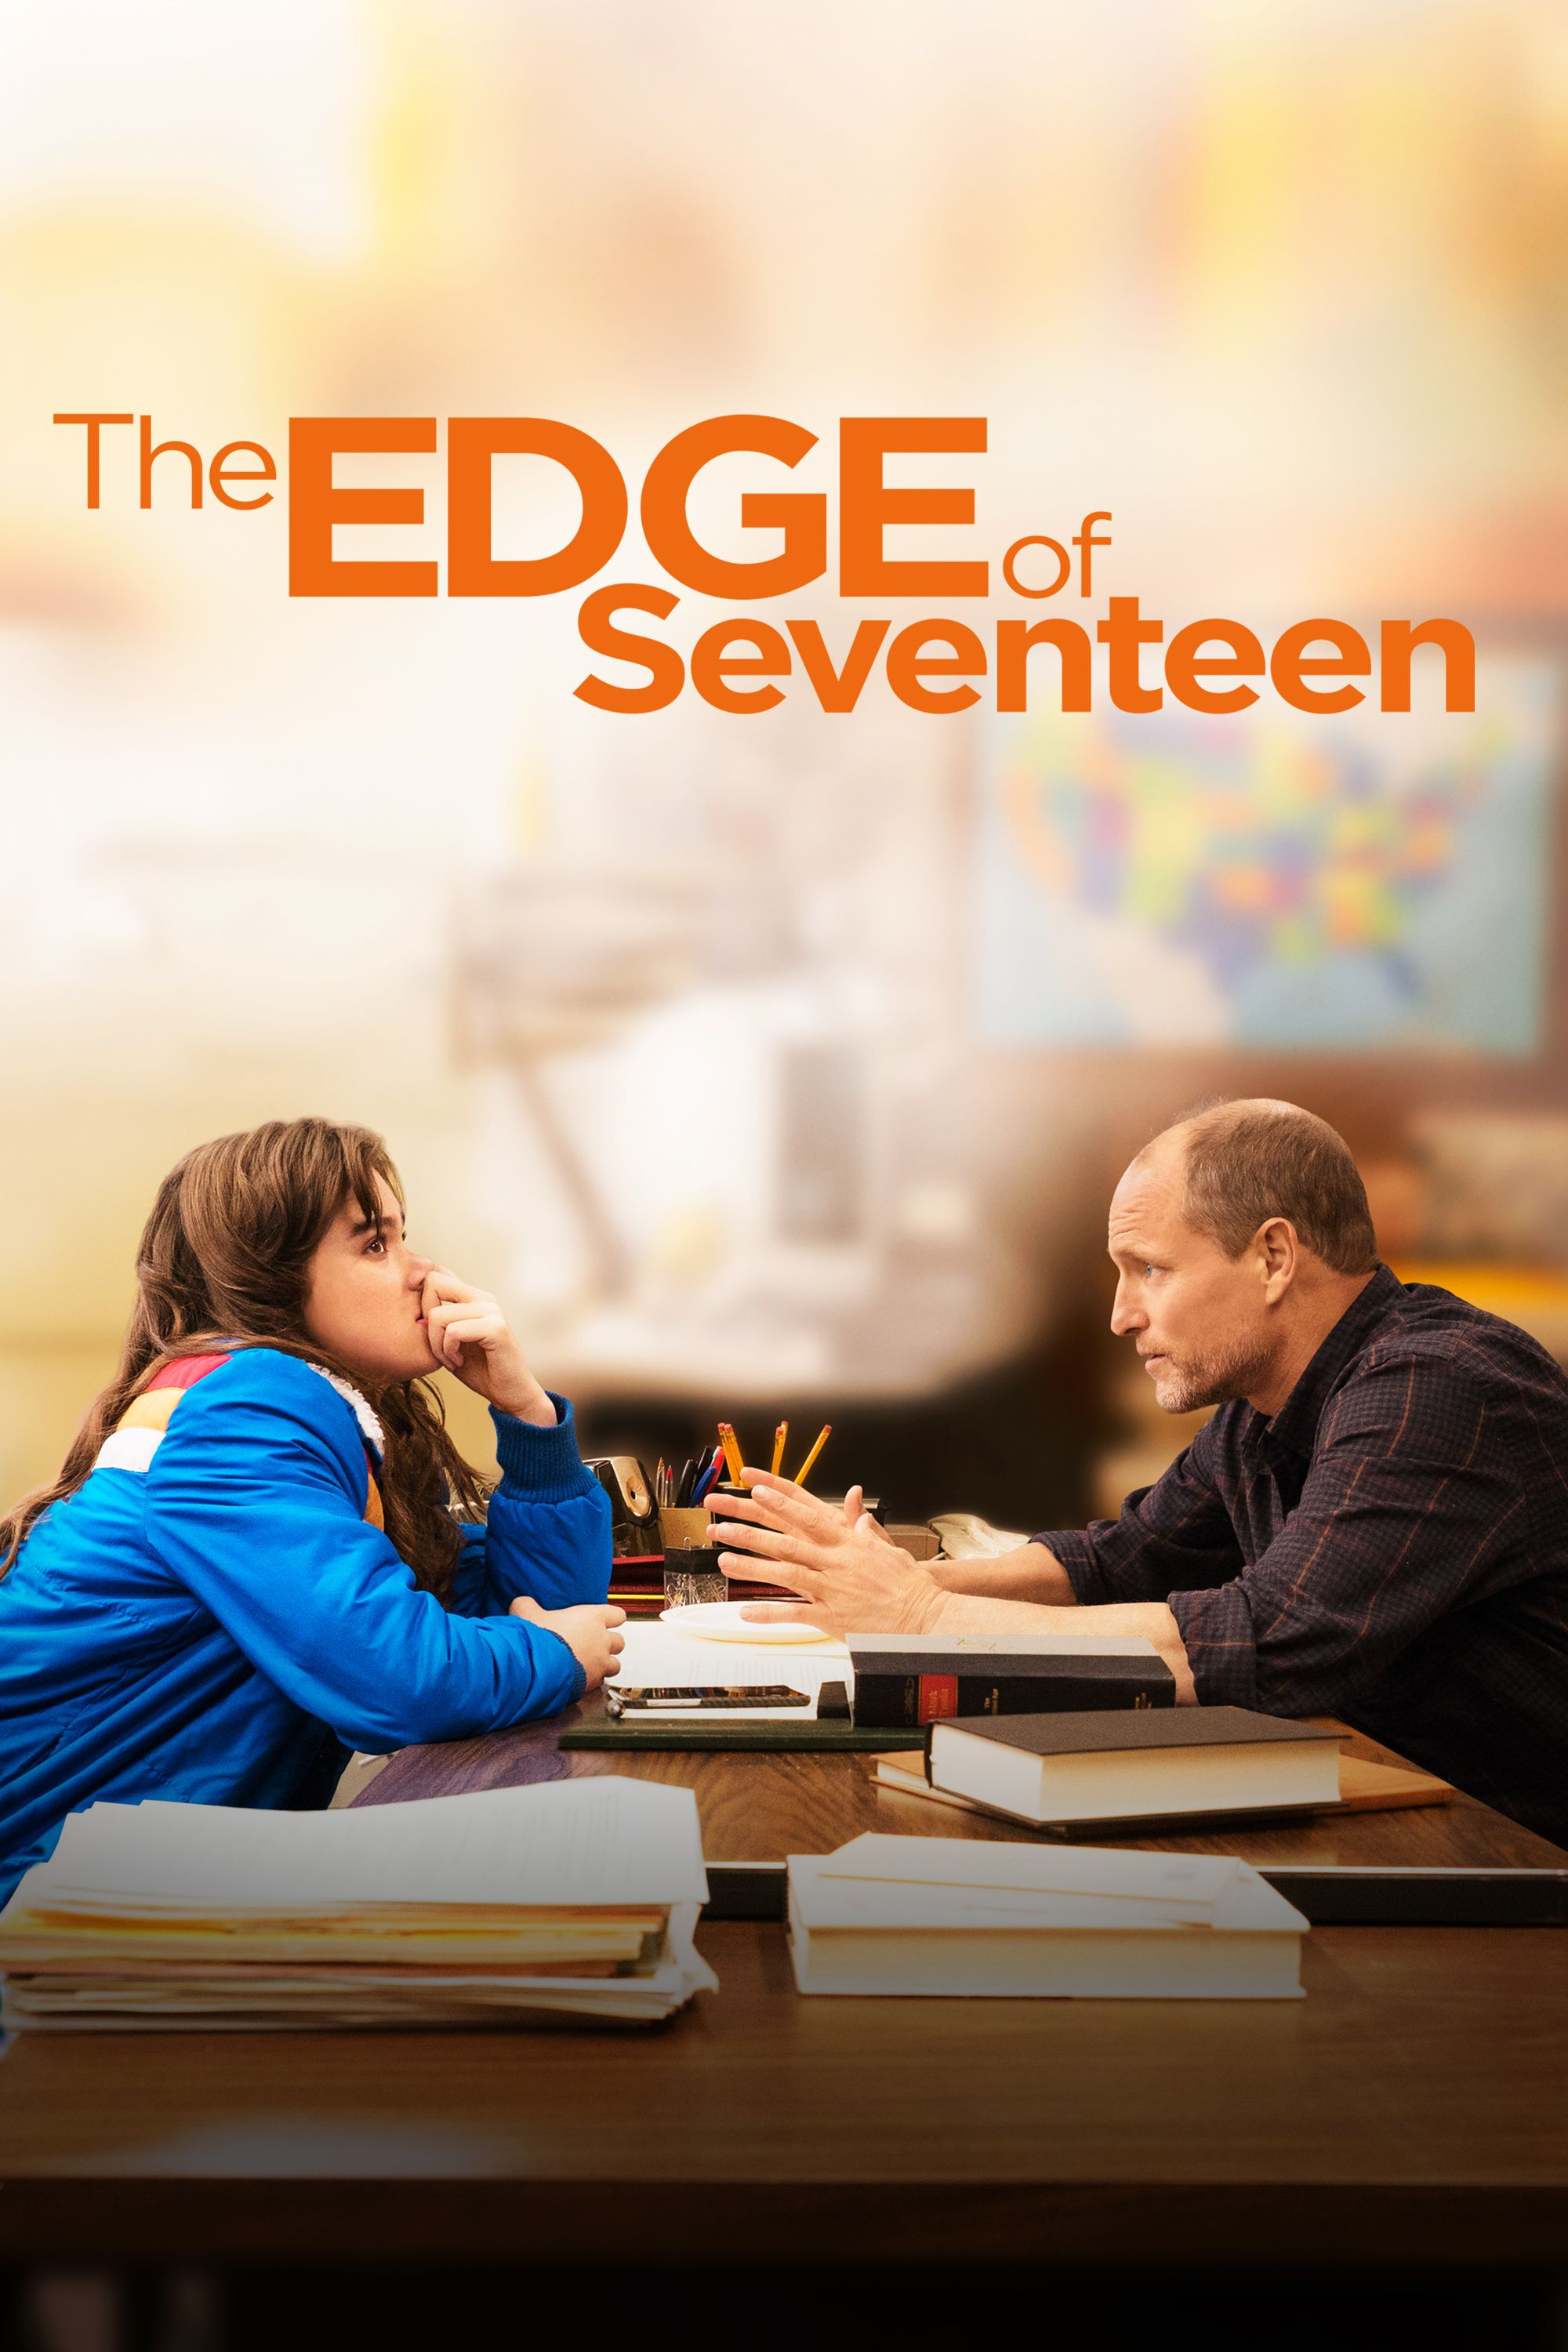 at the edge of seventeen full movie free